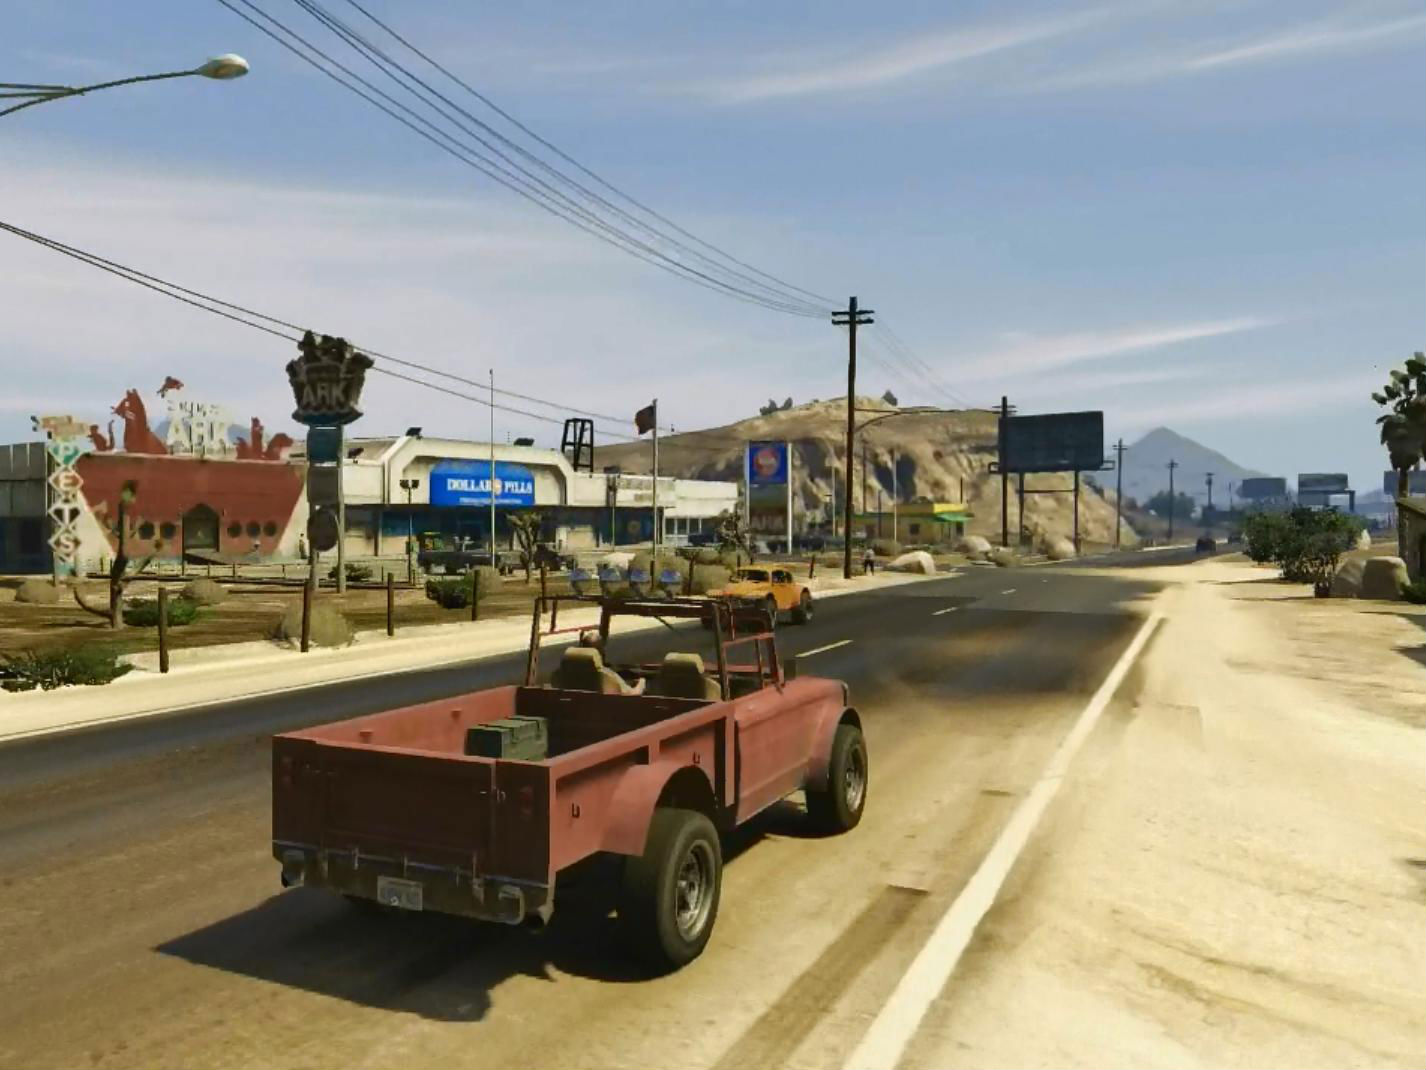 Rockstar Games hasn't found a solution for the mysterious case of disappearing cars in